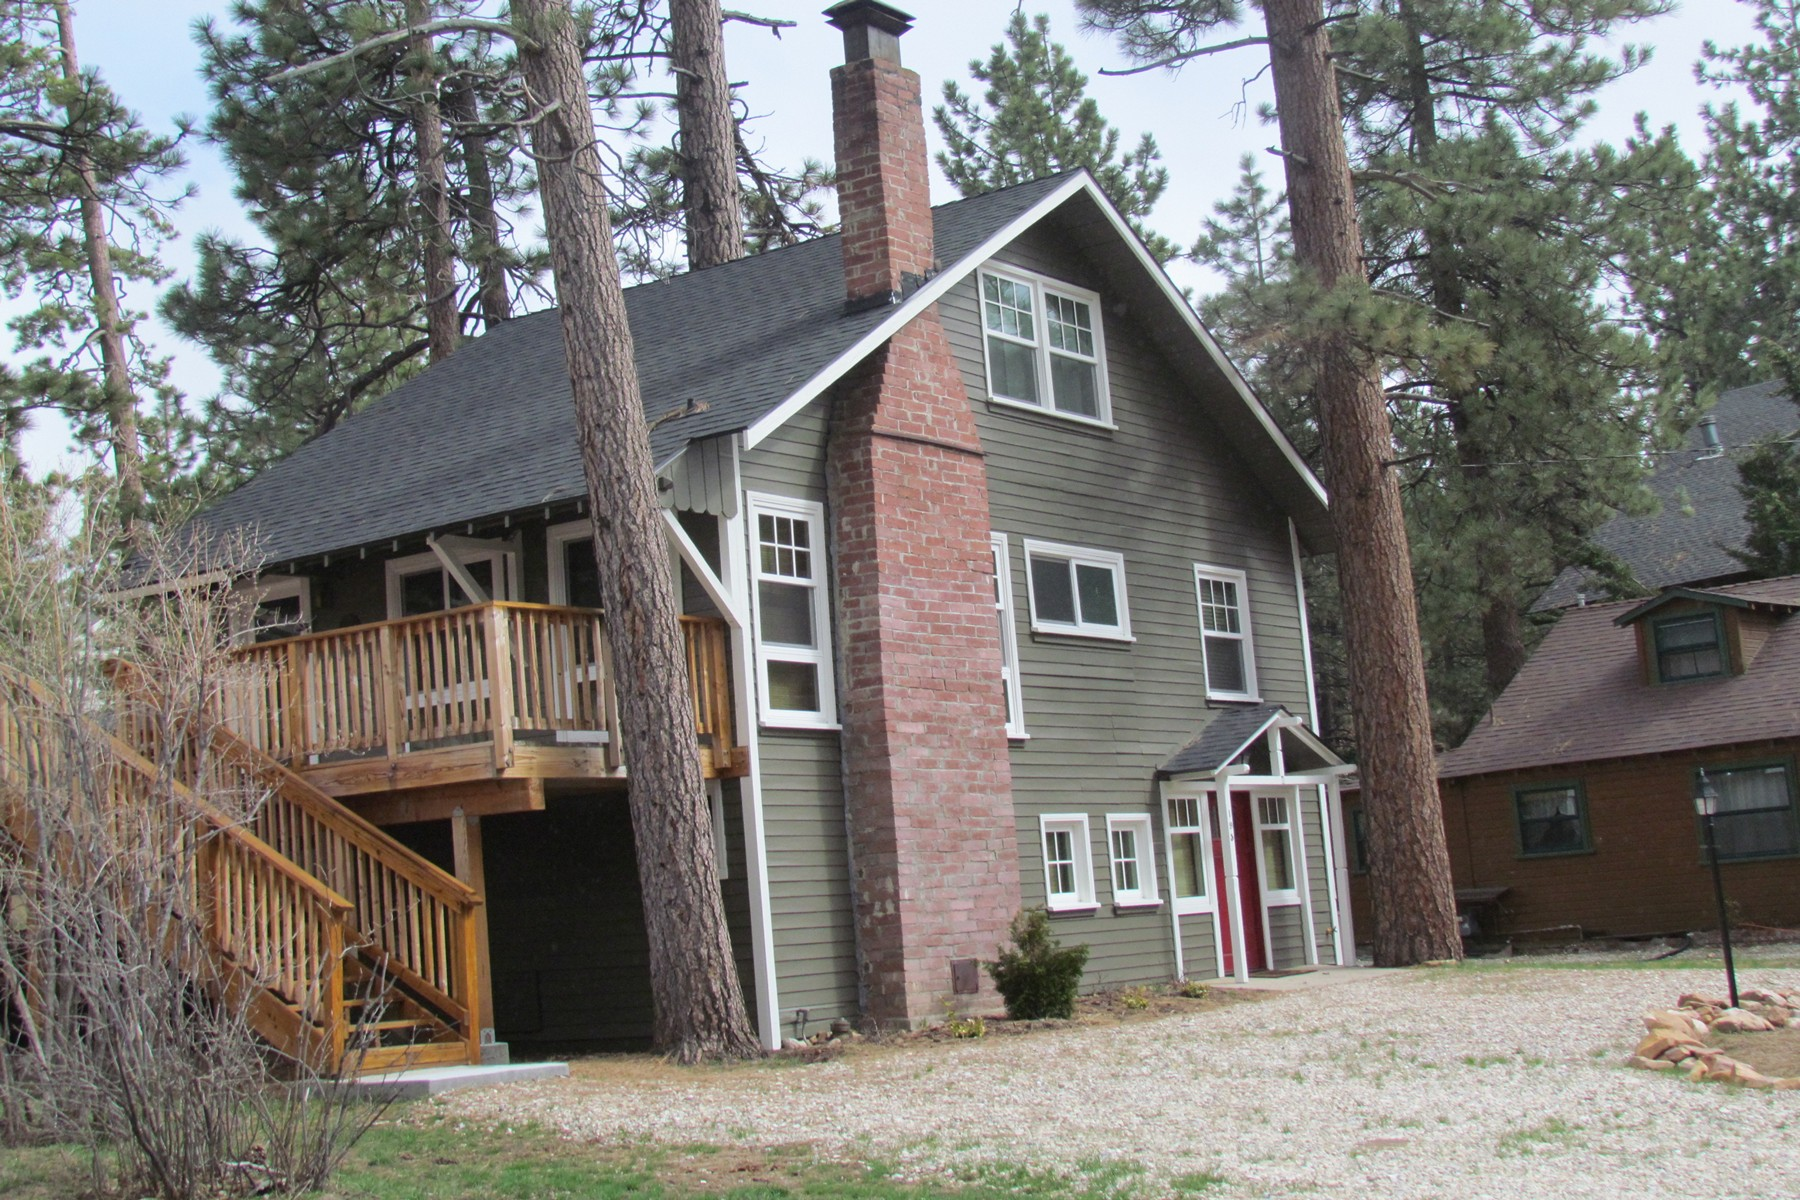 Maison unifamiliale pour l Vente à 195 Elgin Road Big Bear Lake, Californie, 92315 États-Unis